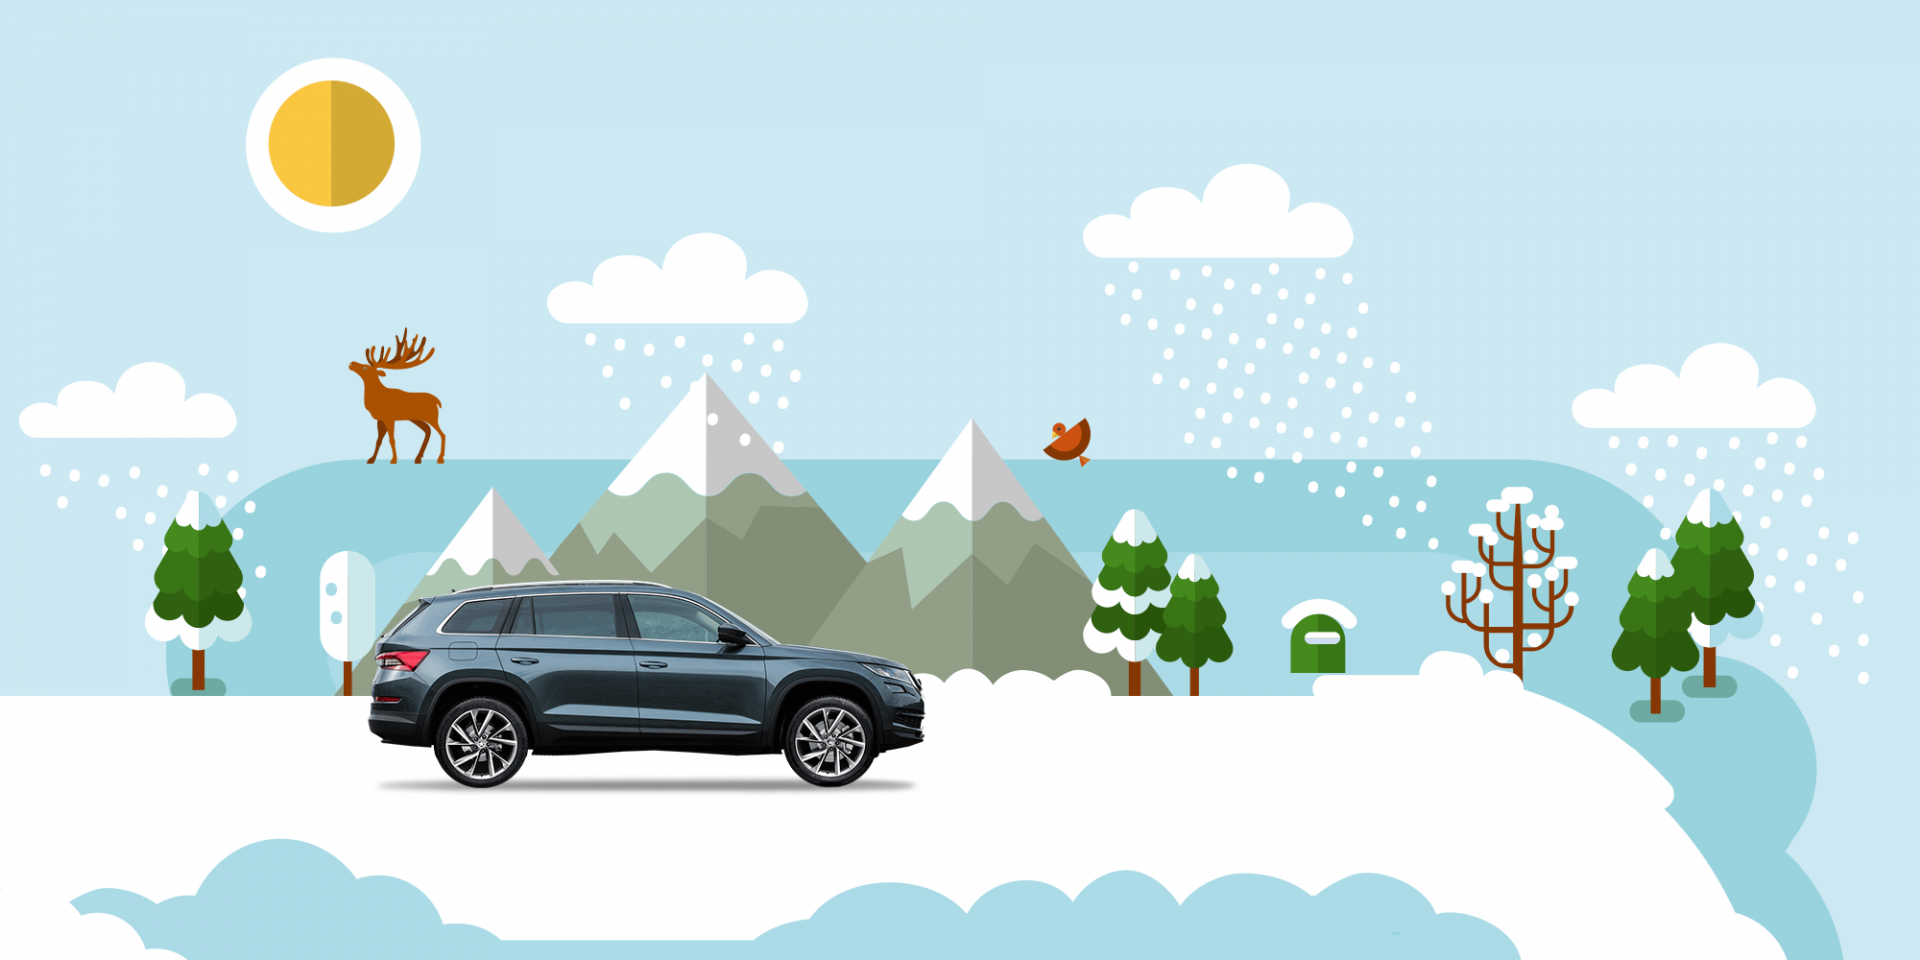 Road To Christmas.Road To Christmas Skoda Storyboard